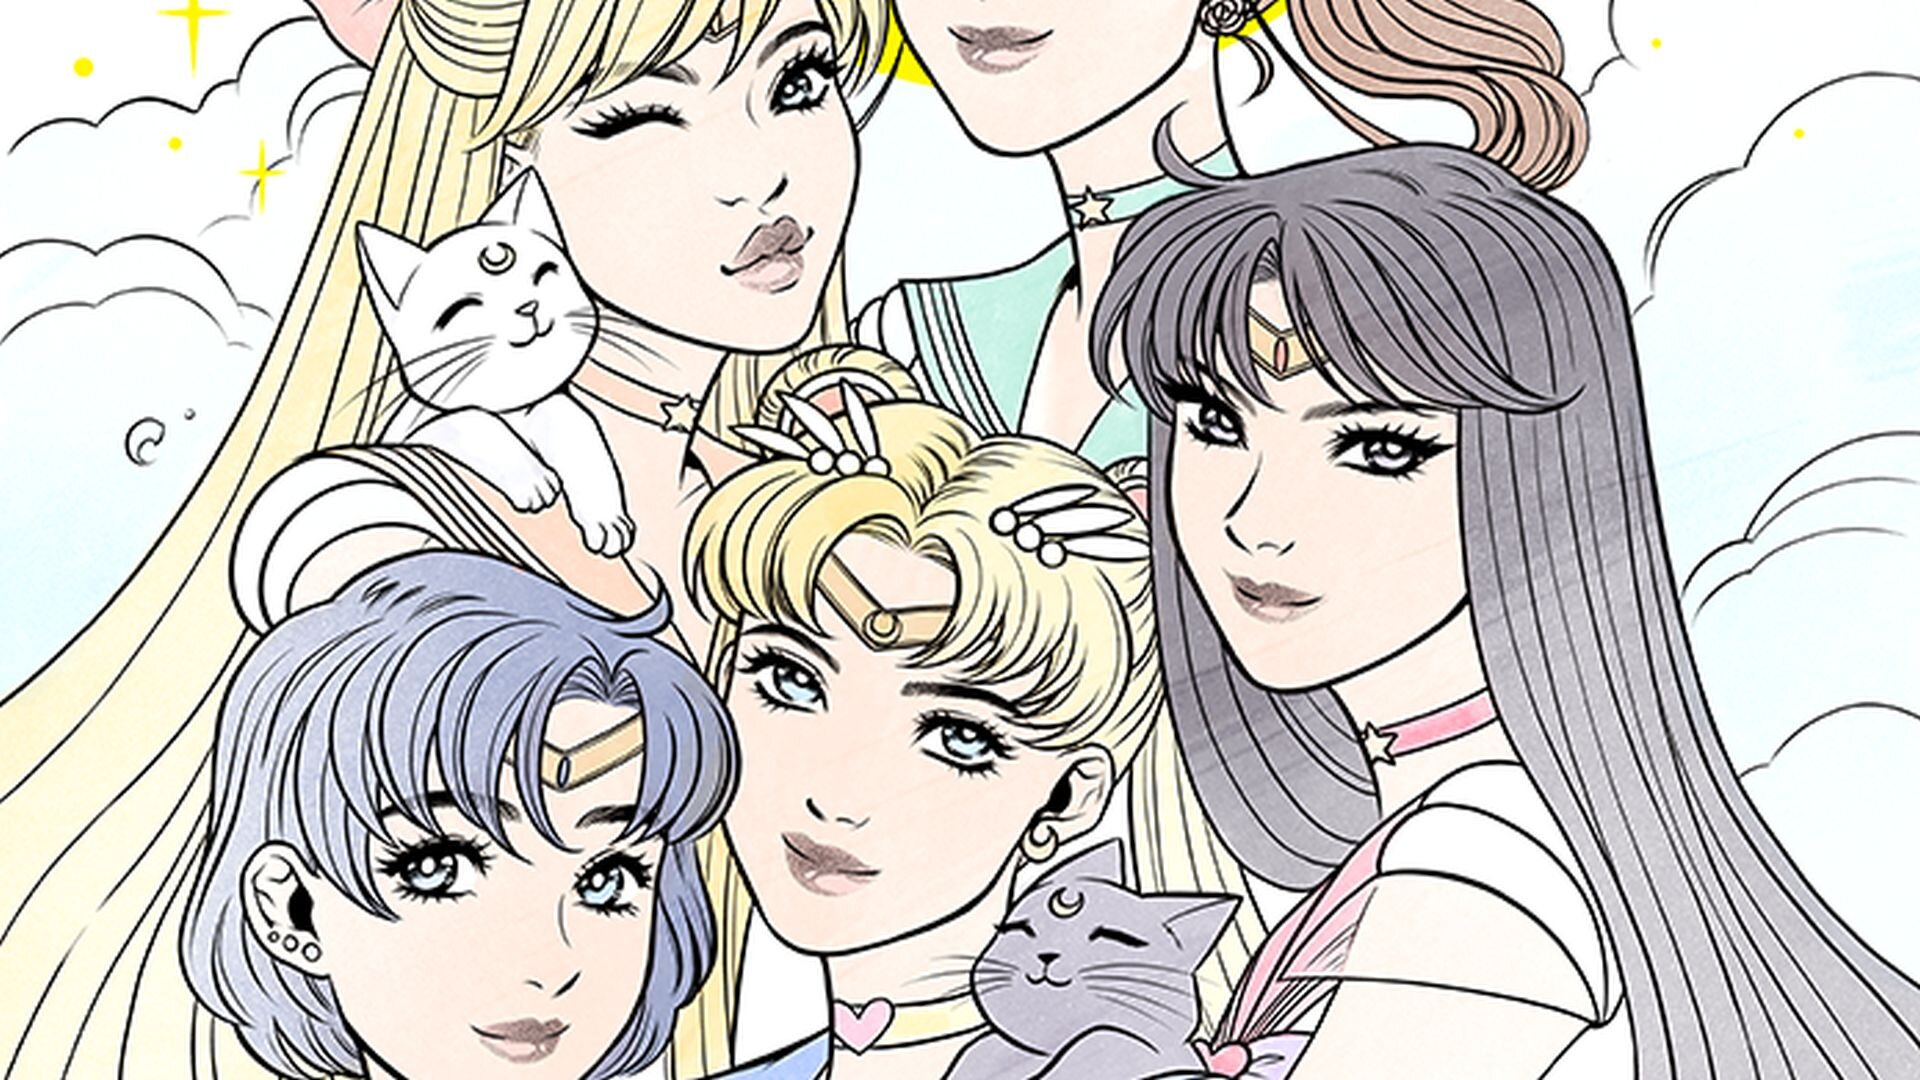 Sailor Moon colouring page - Coloring Library | 1080x1920